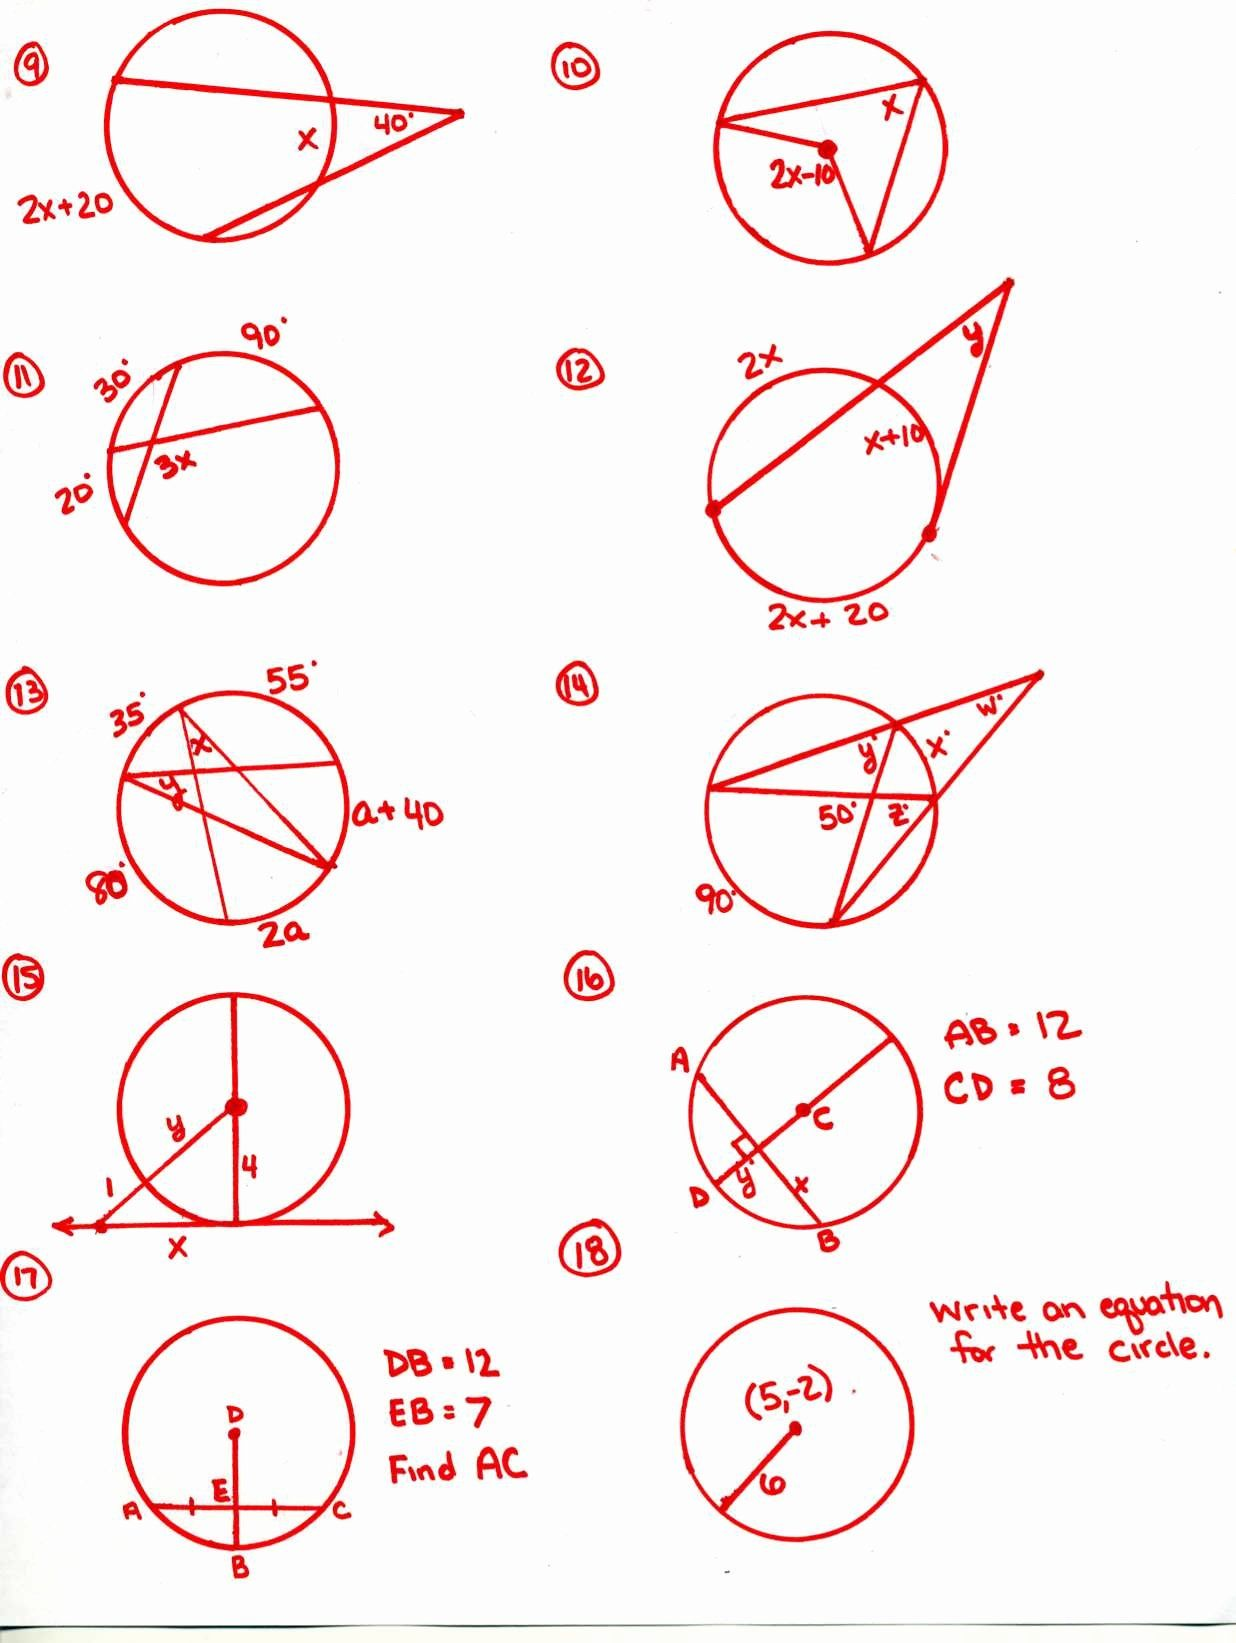 hight resolution of Angles In A Circle Worksheet Lovely Circle theorems Match Up by Debbs  Bridgman – Chessmuseum Template Library   Geometry worksheets